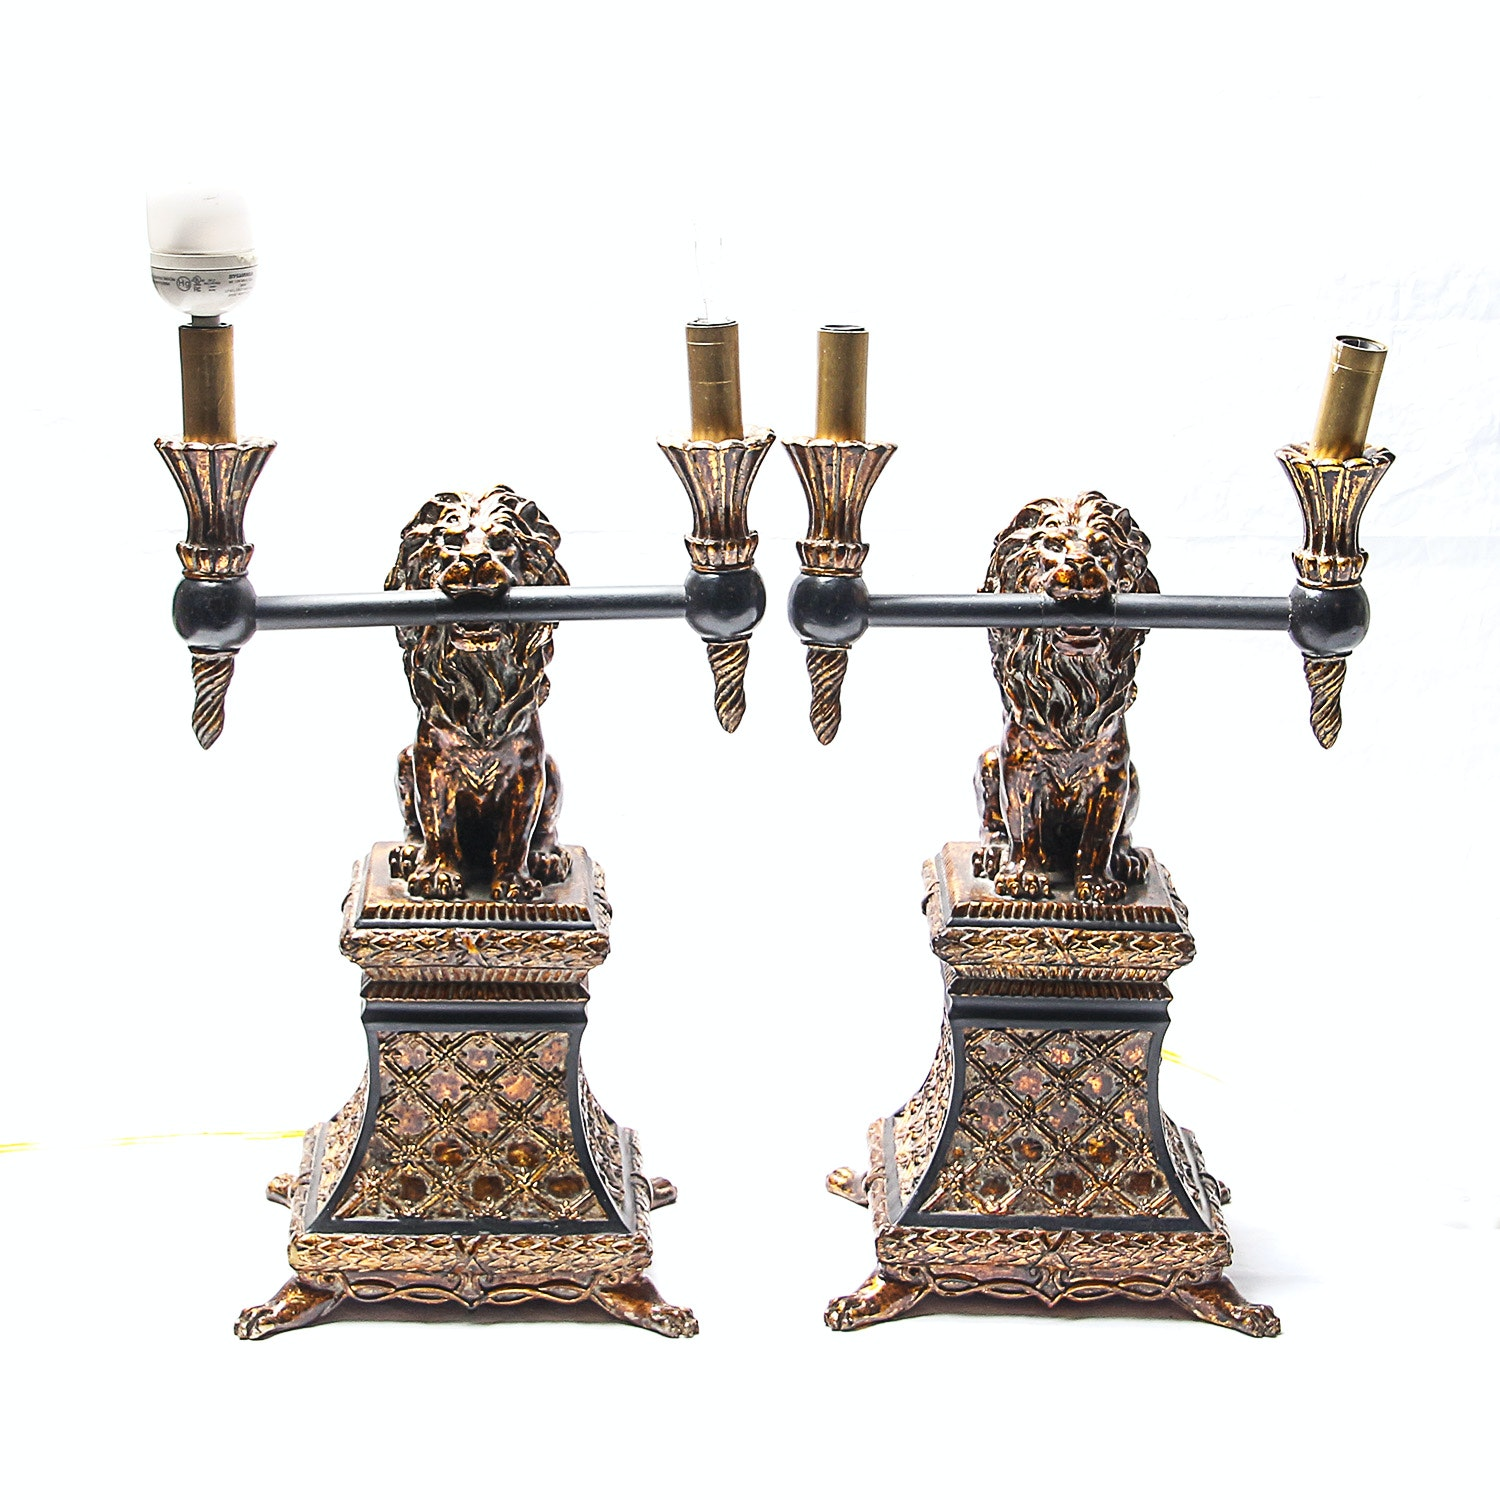 Pair of Lion Statue Lamps